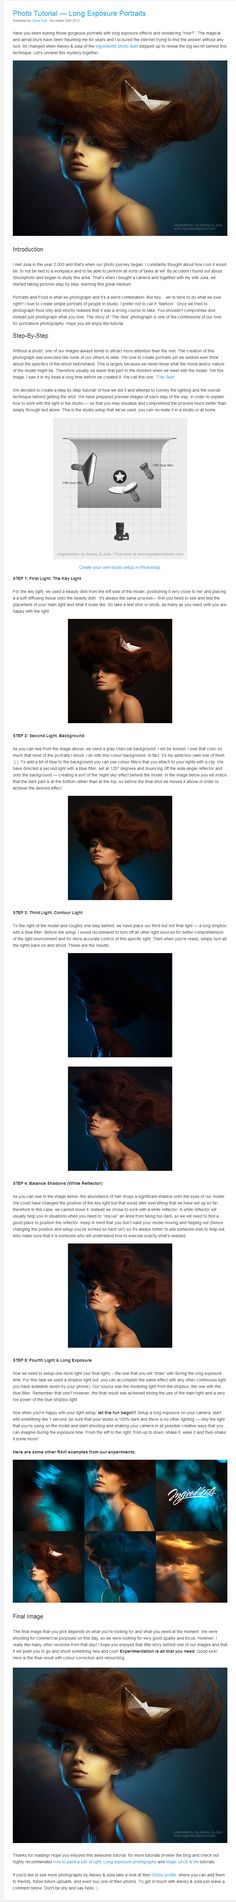 Alexey & Julia - long exposure portraits tutorial